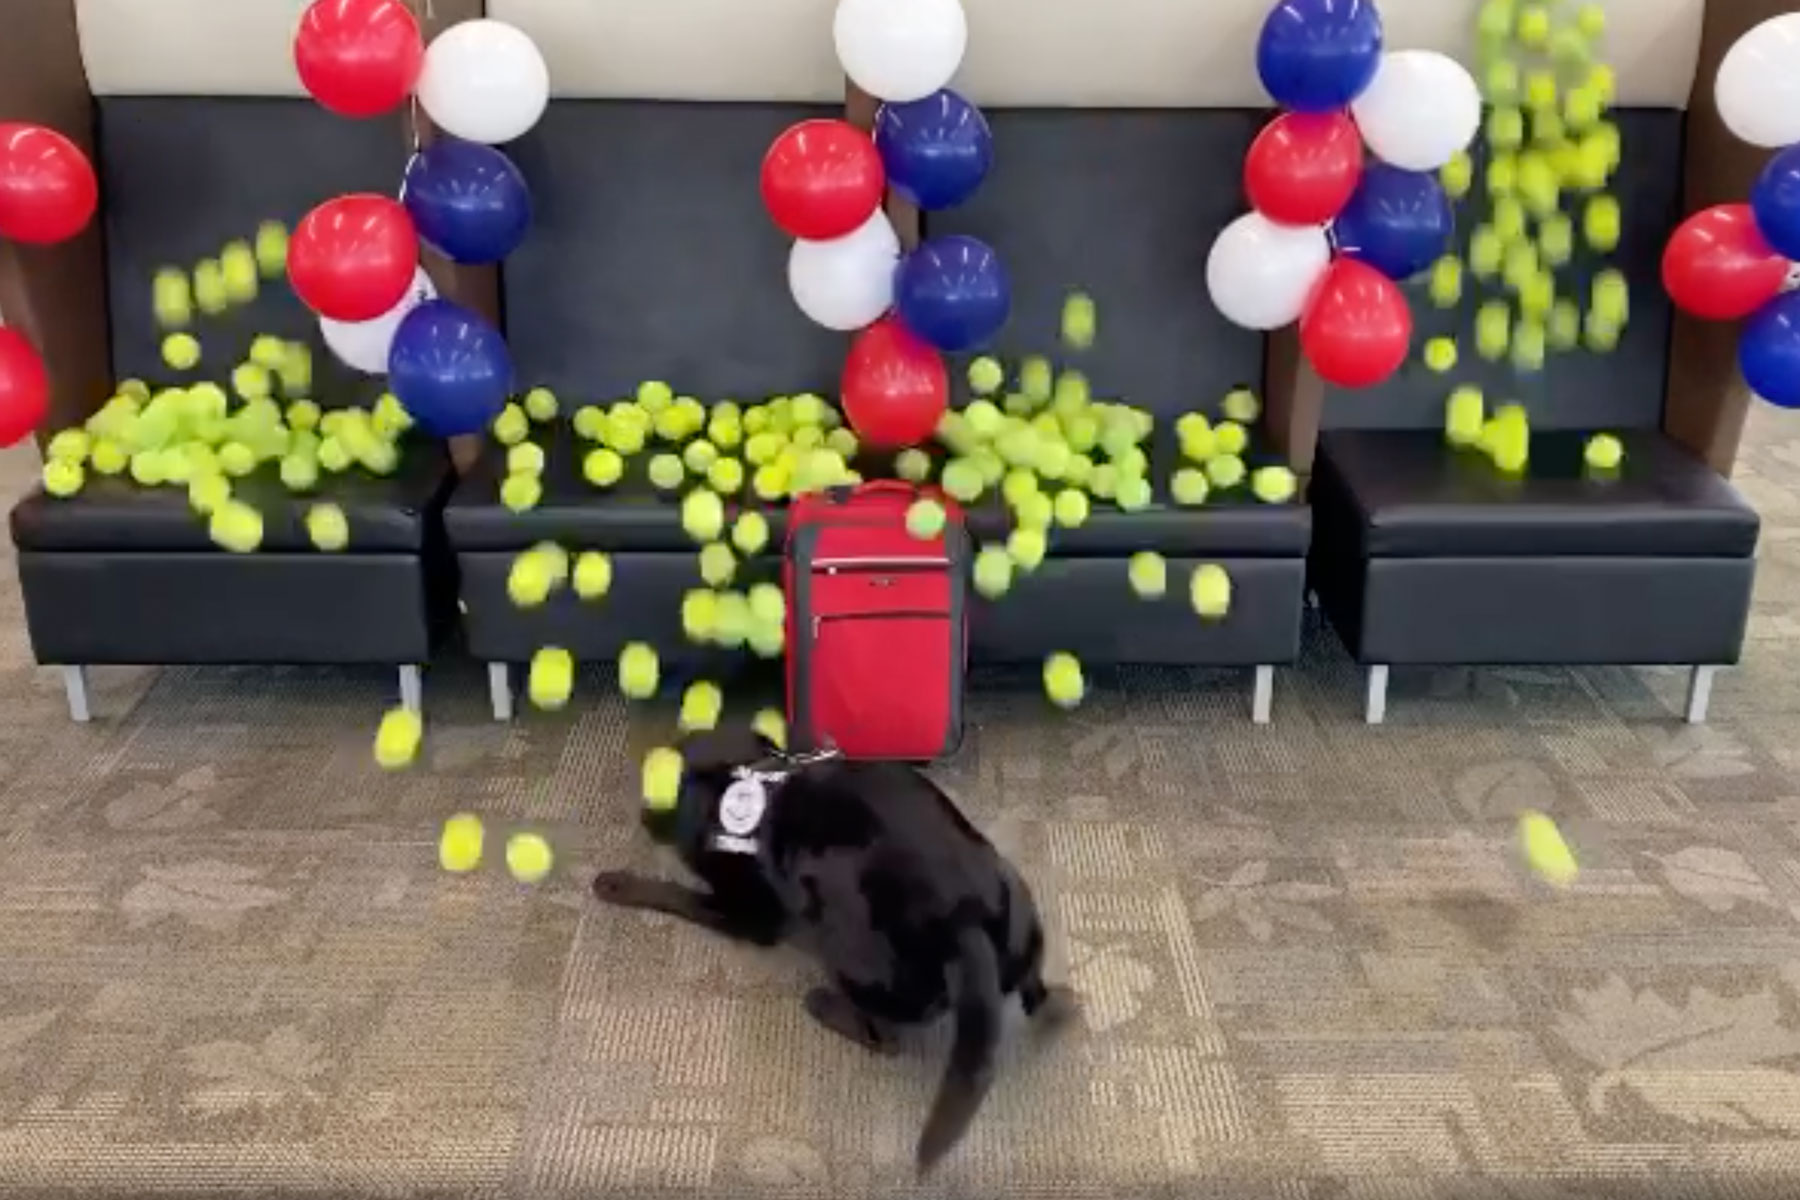 TSA dog gets surprised with hundreds of tennis balls